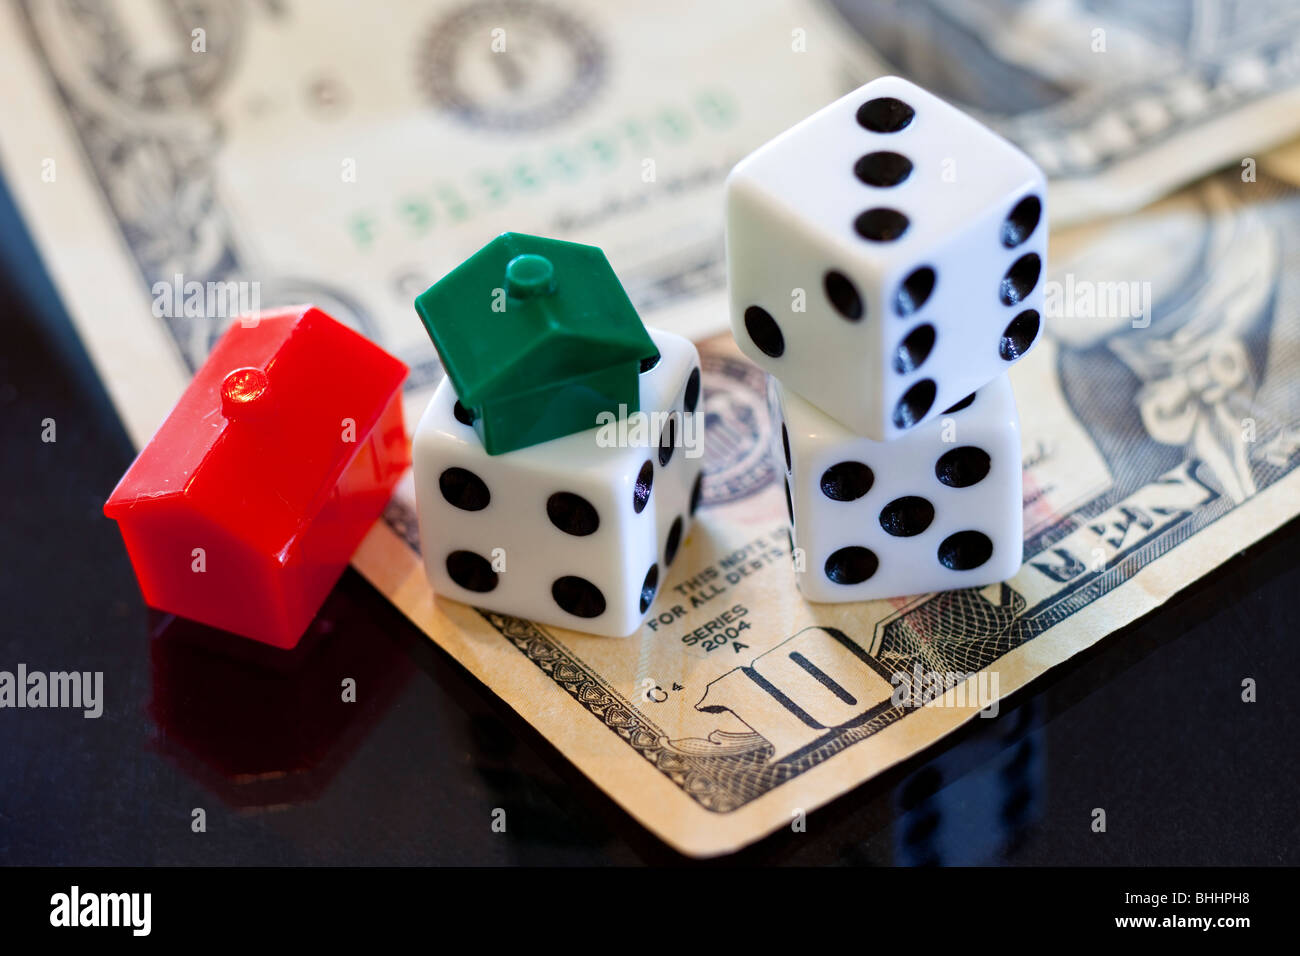 US dollars, Dice and Monopoly house and hotel on black background - Stock Image